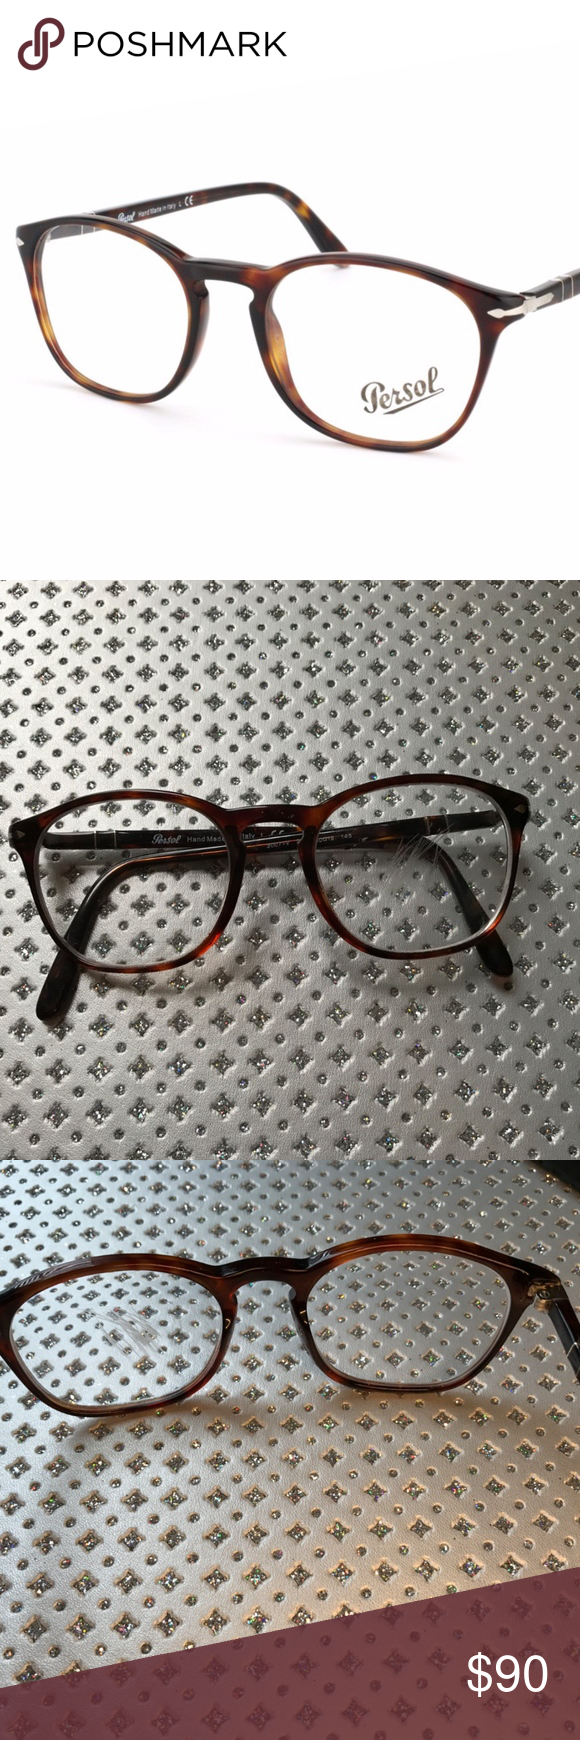 37c43f4769ec Persol PO 3007V 24 Havana Frames Unisex Persol Havana Glasses in Brown. The  shape size is square with rounded edges (see pictures) The frame is a  full-rim ...